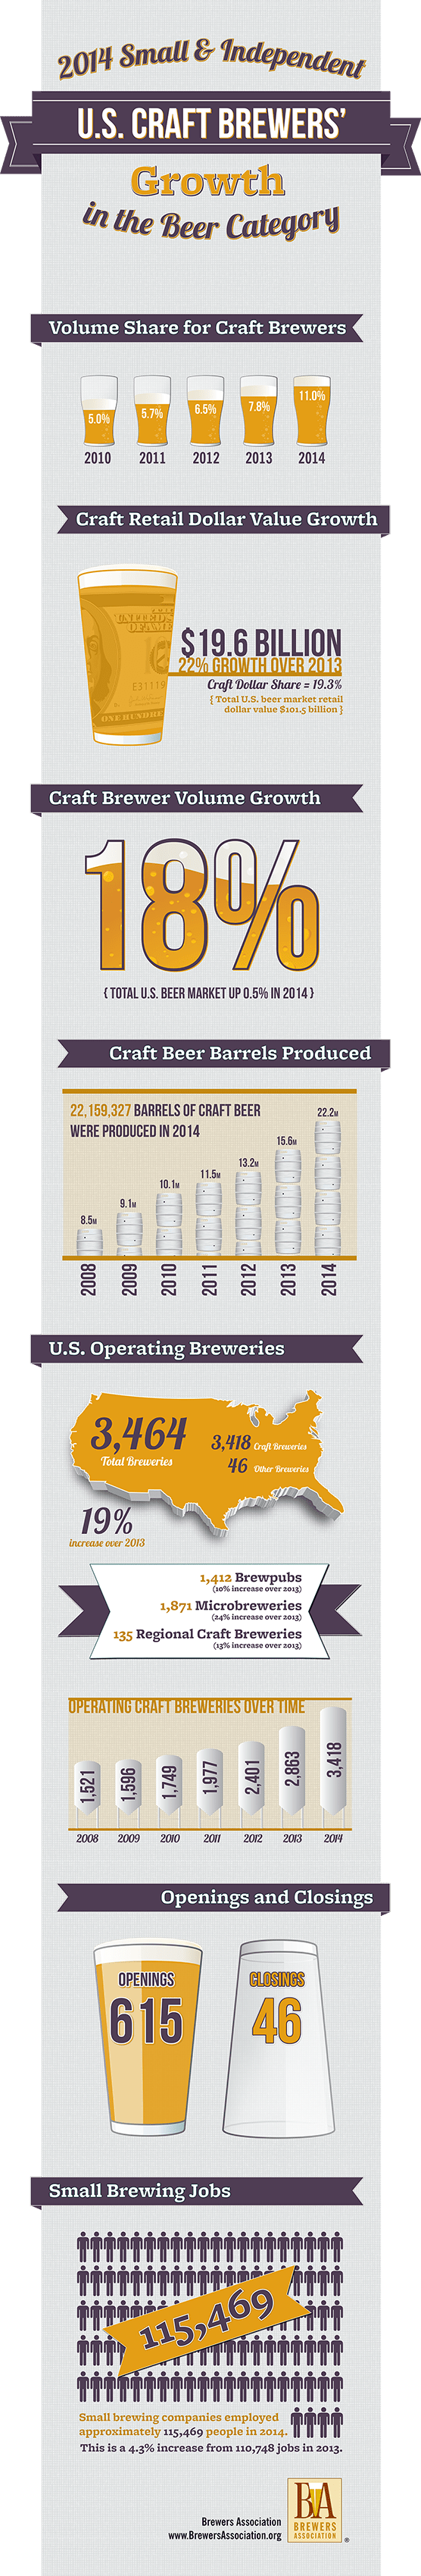 US Craft Brewers' Growth Infographic